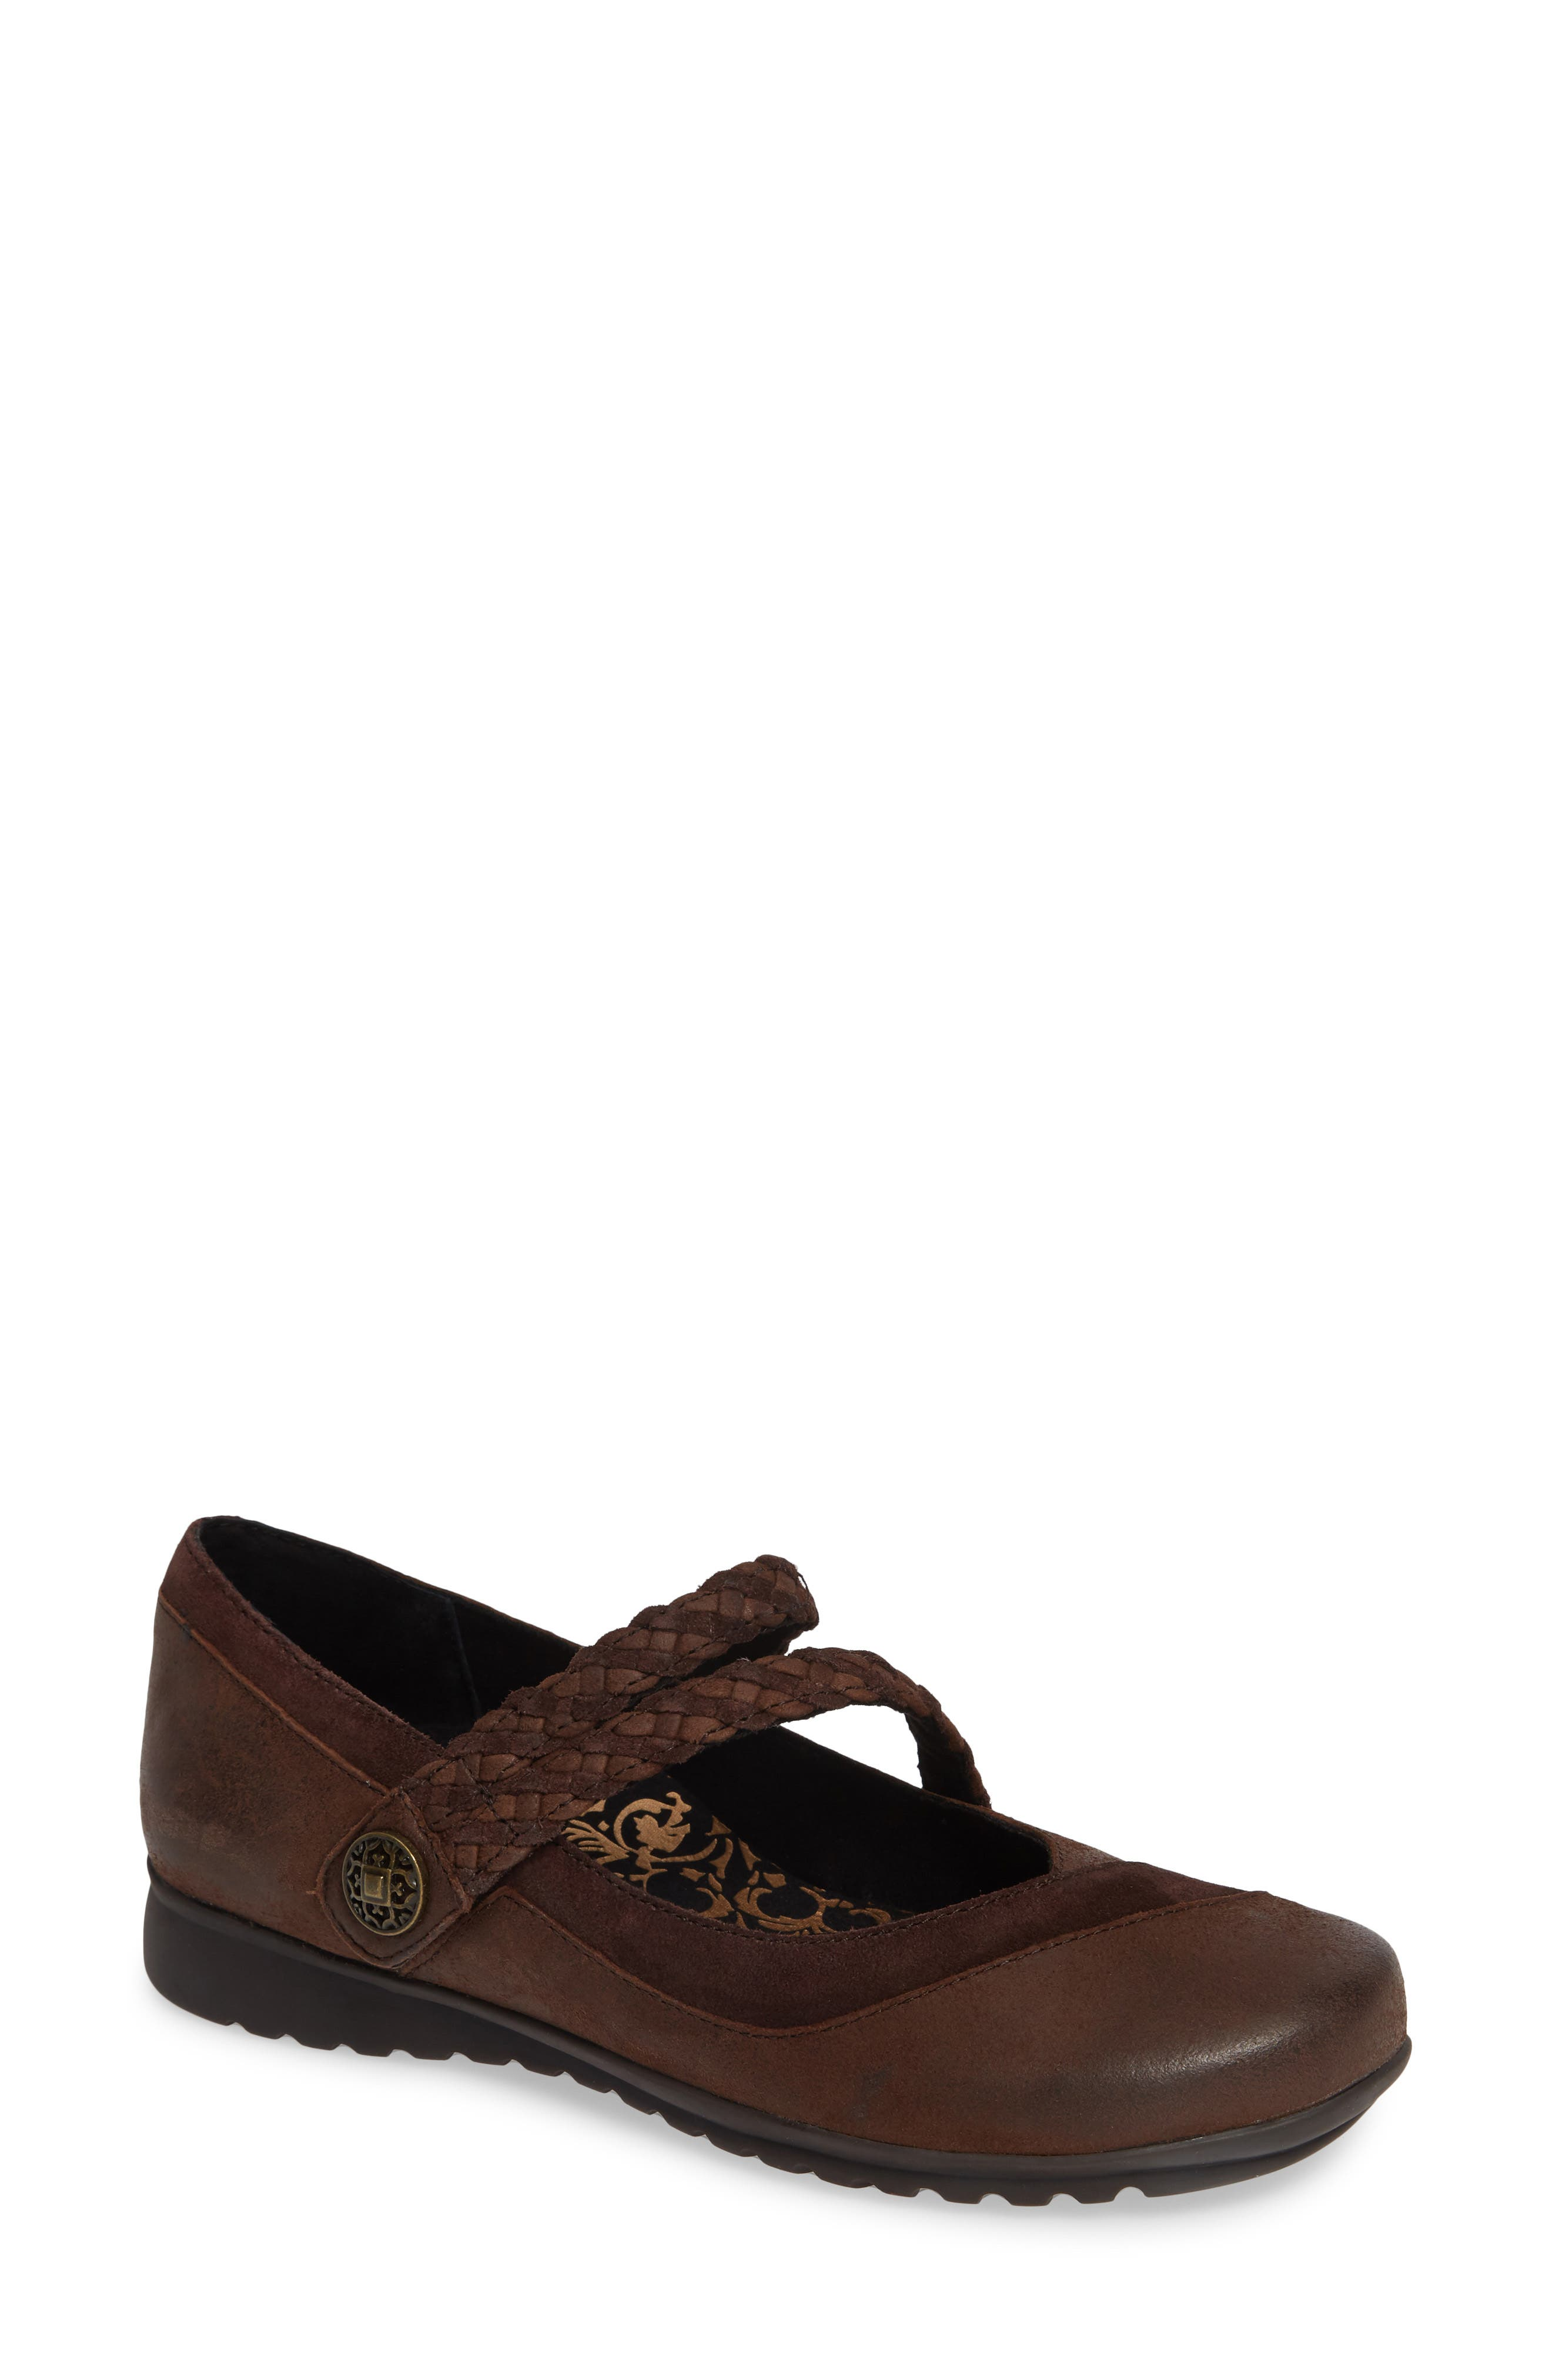 AETREX 'Ada' Mary Jane, Main, color, CHOCOLATE LEATHER